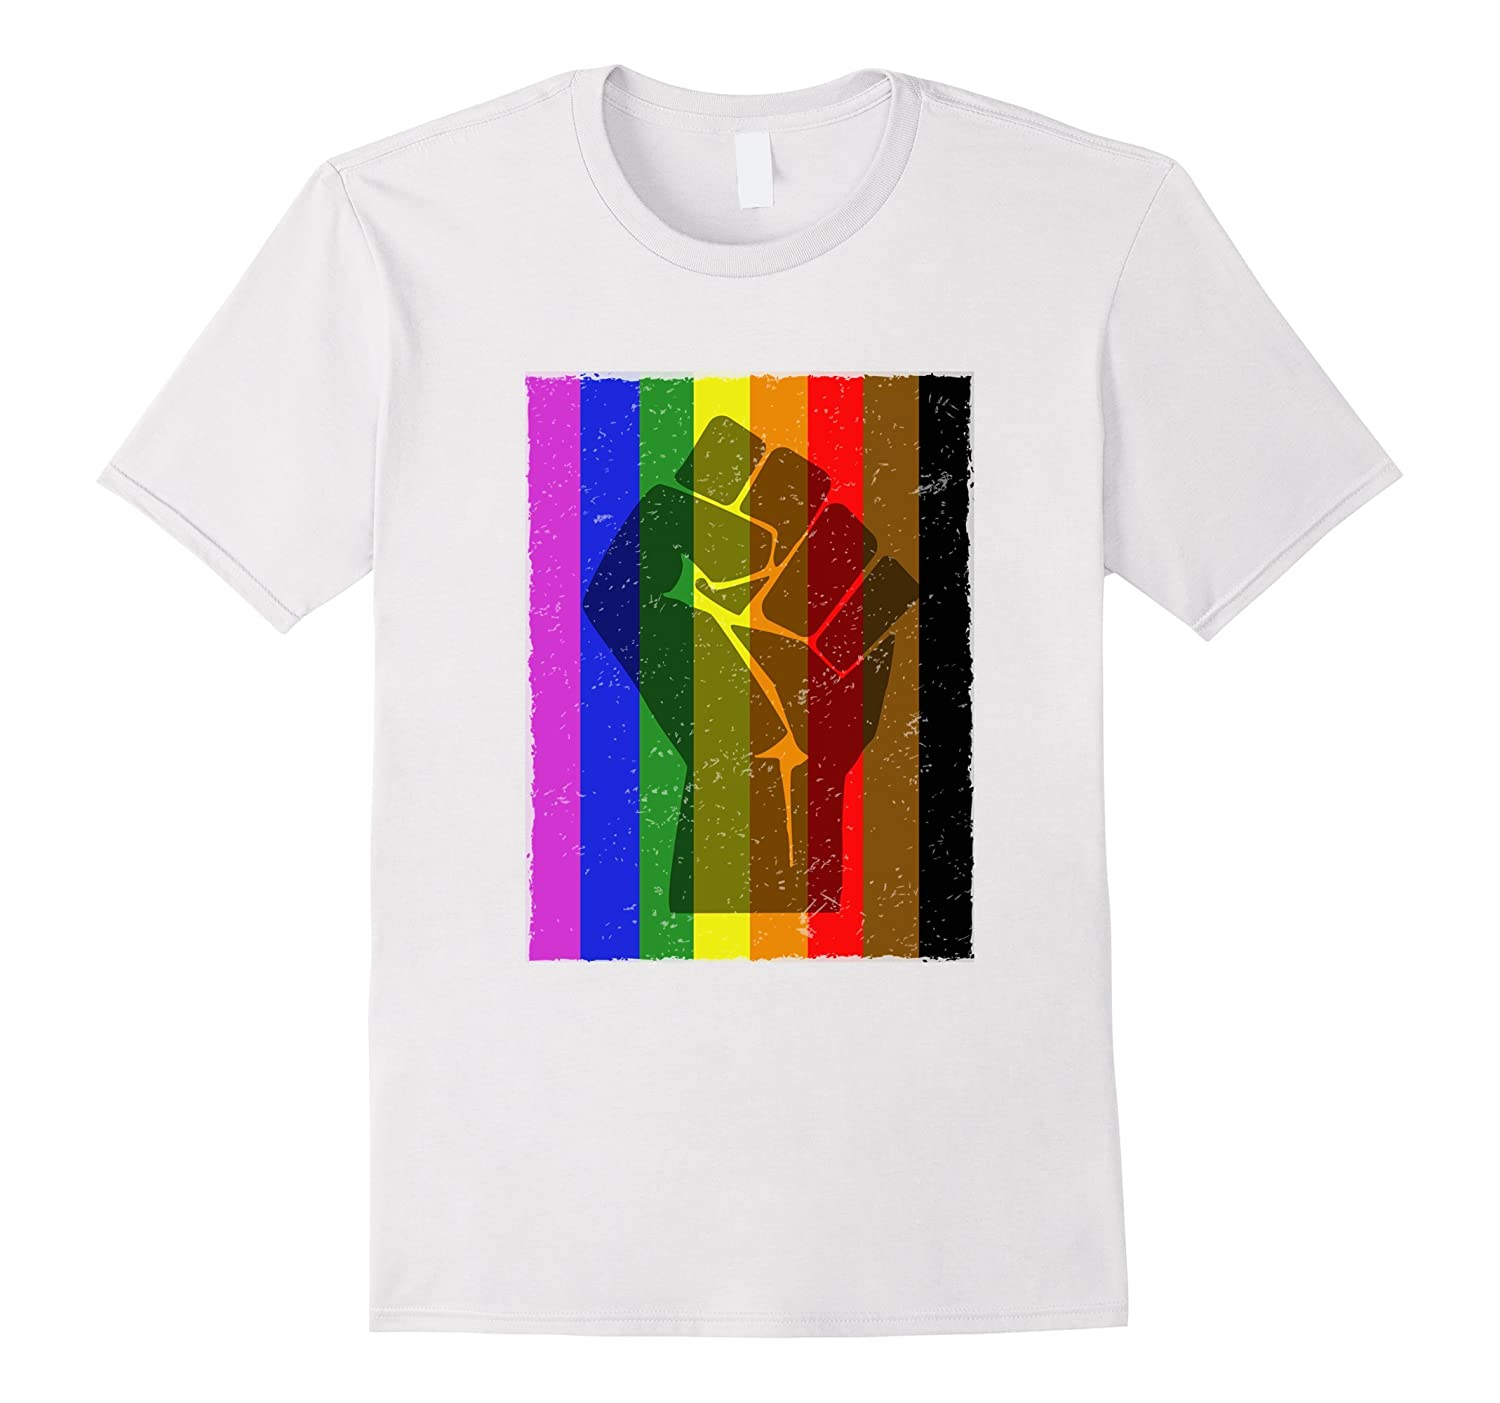 LGBTQ Resist Fist Gay Pride Black Lives Matter Tshirt-PL